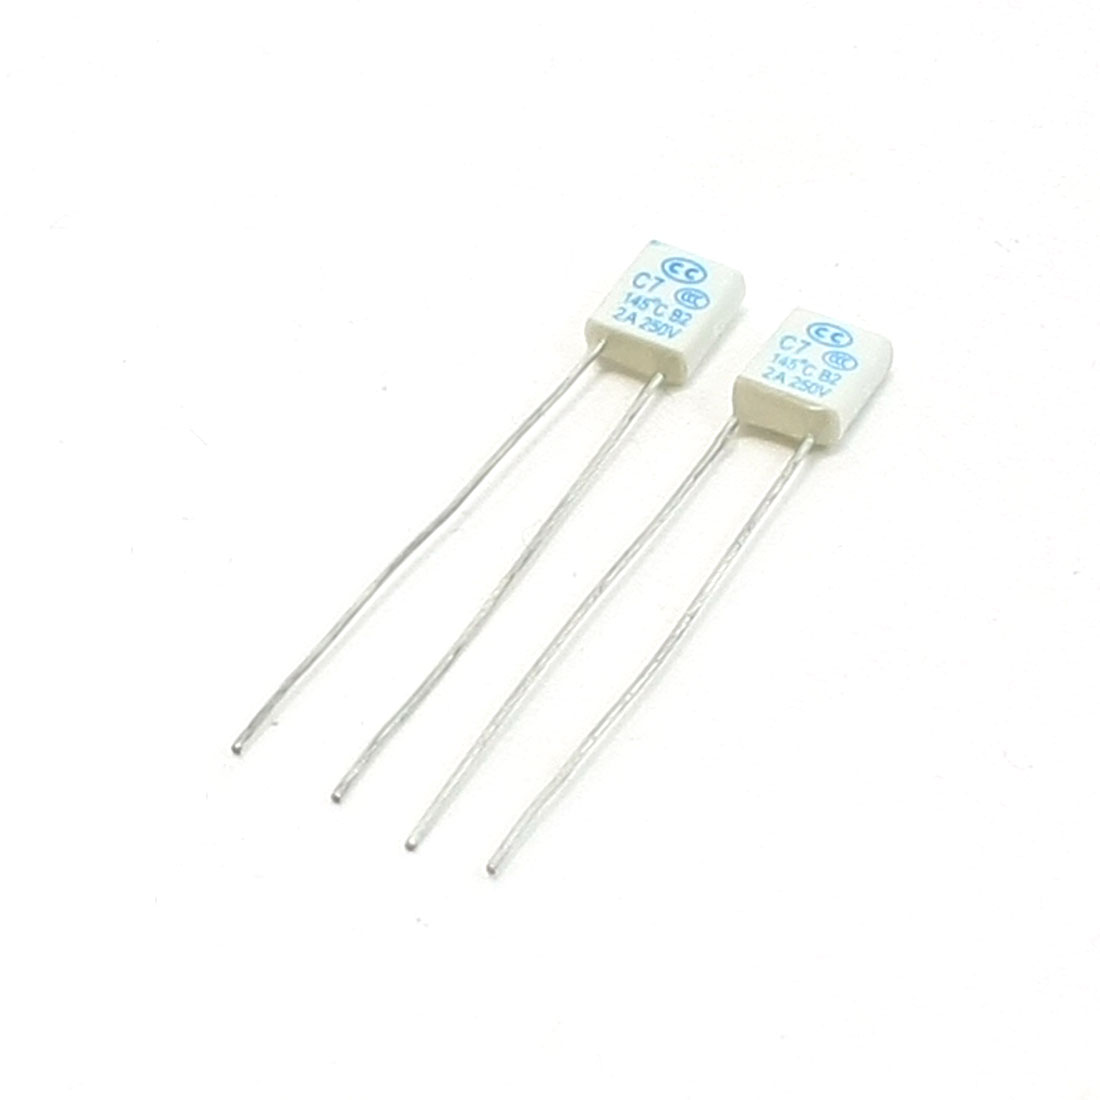 2pcs 8 x 6 x 2.5mm Square Micro Fan Fuse 250V 2A 145 Degree Celsius